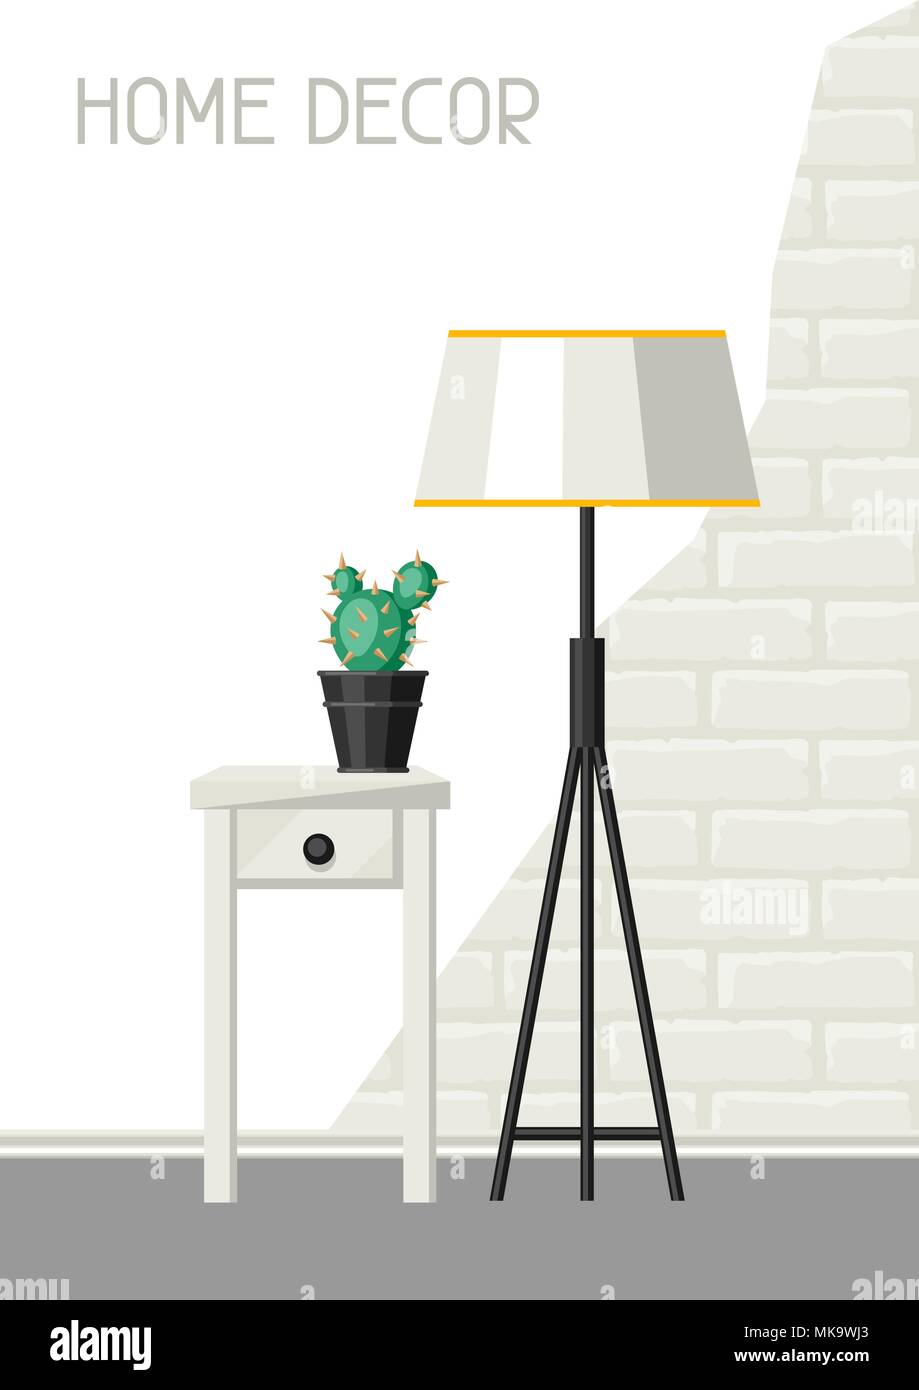 Interior home decor. Lamp and table with cactus. - Stock Image